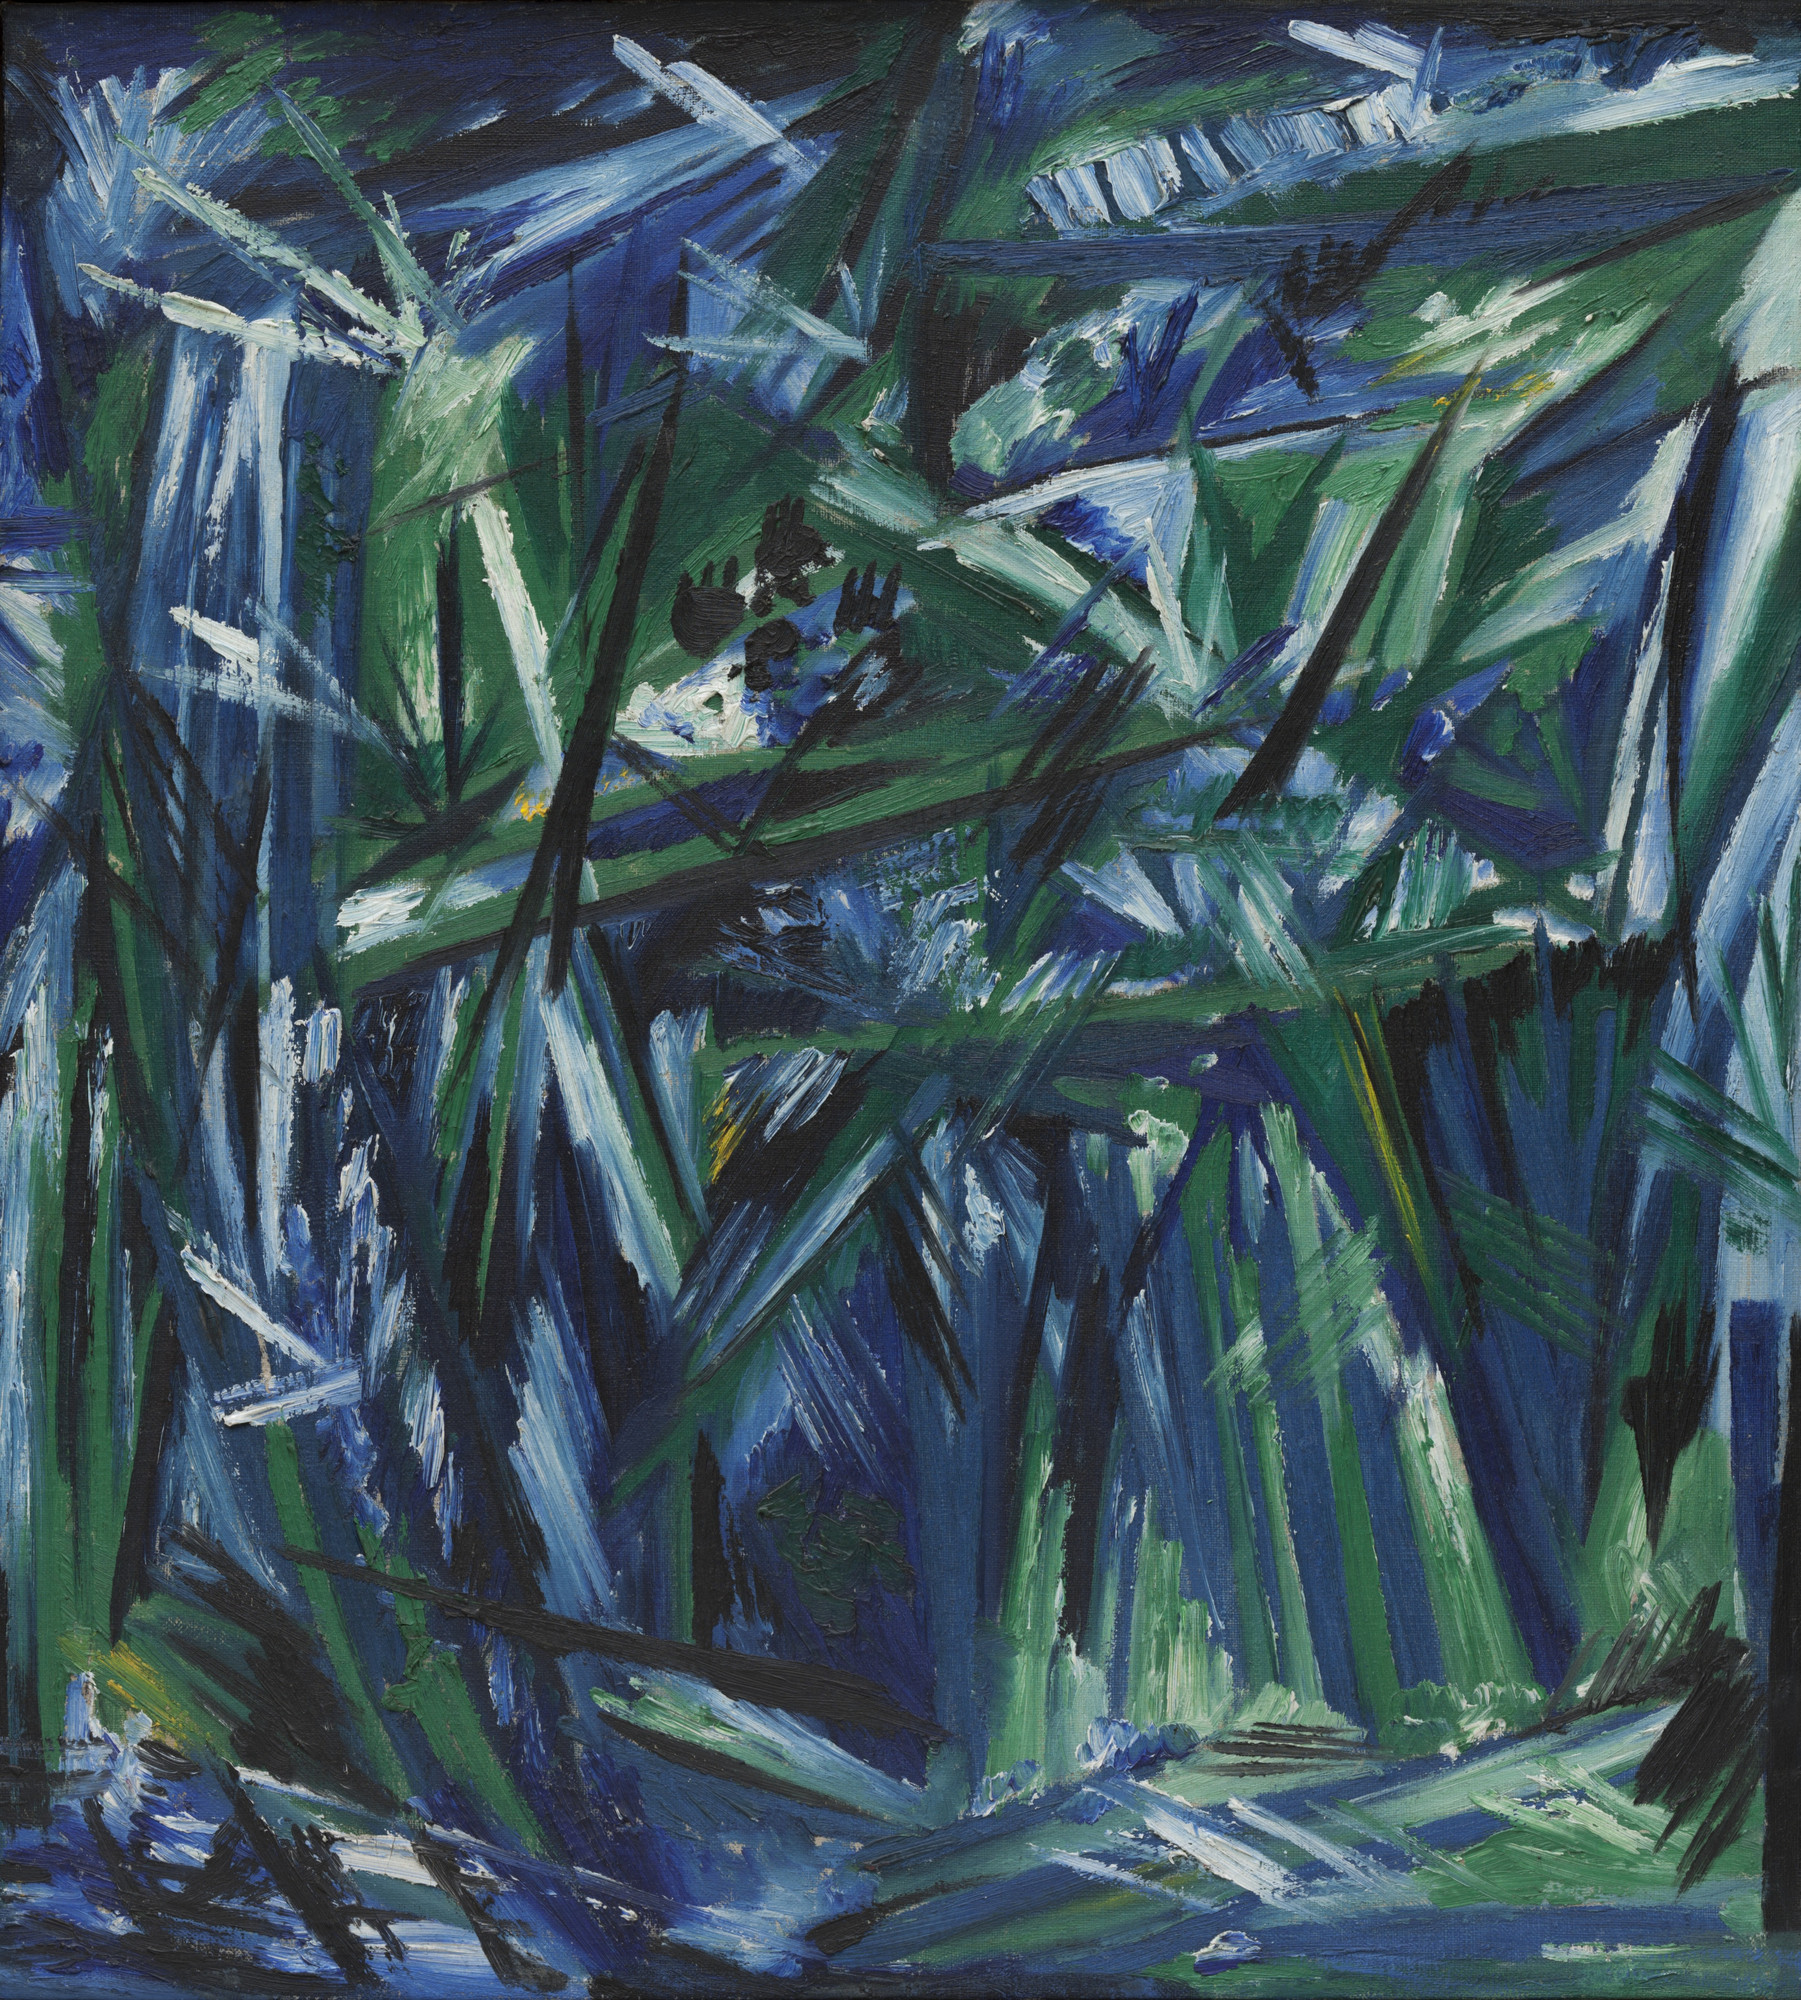 Natalia Goncharova. Rayonism, Blue-Green Forest. 1913 (dated on reverse 1911)